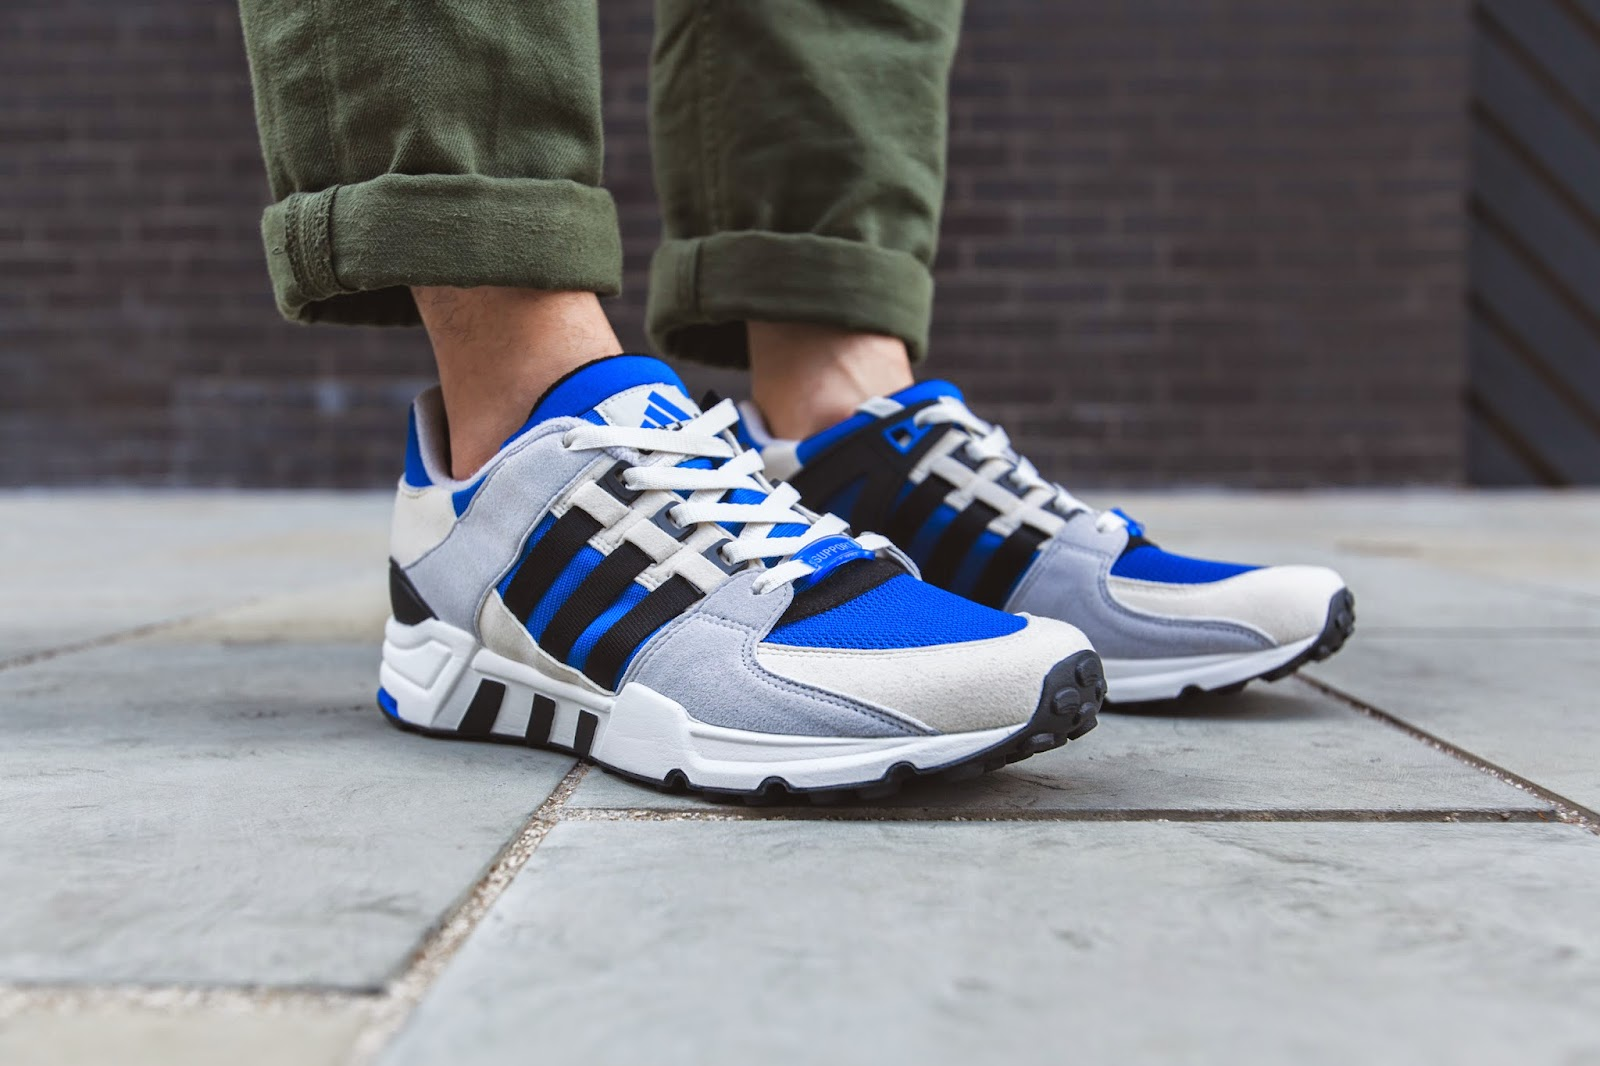 Archive Inspired EQT Support ´93 OG Pack